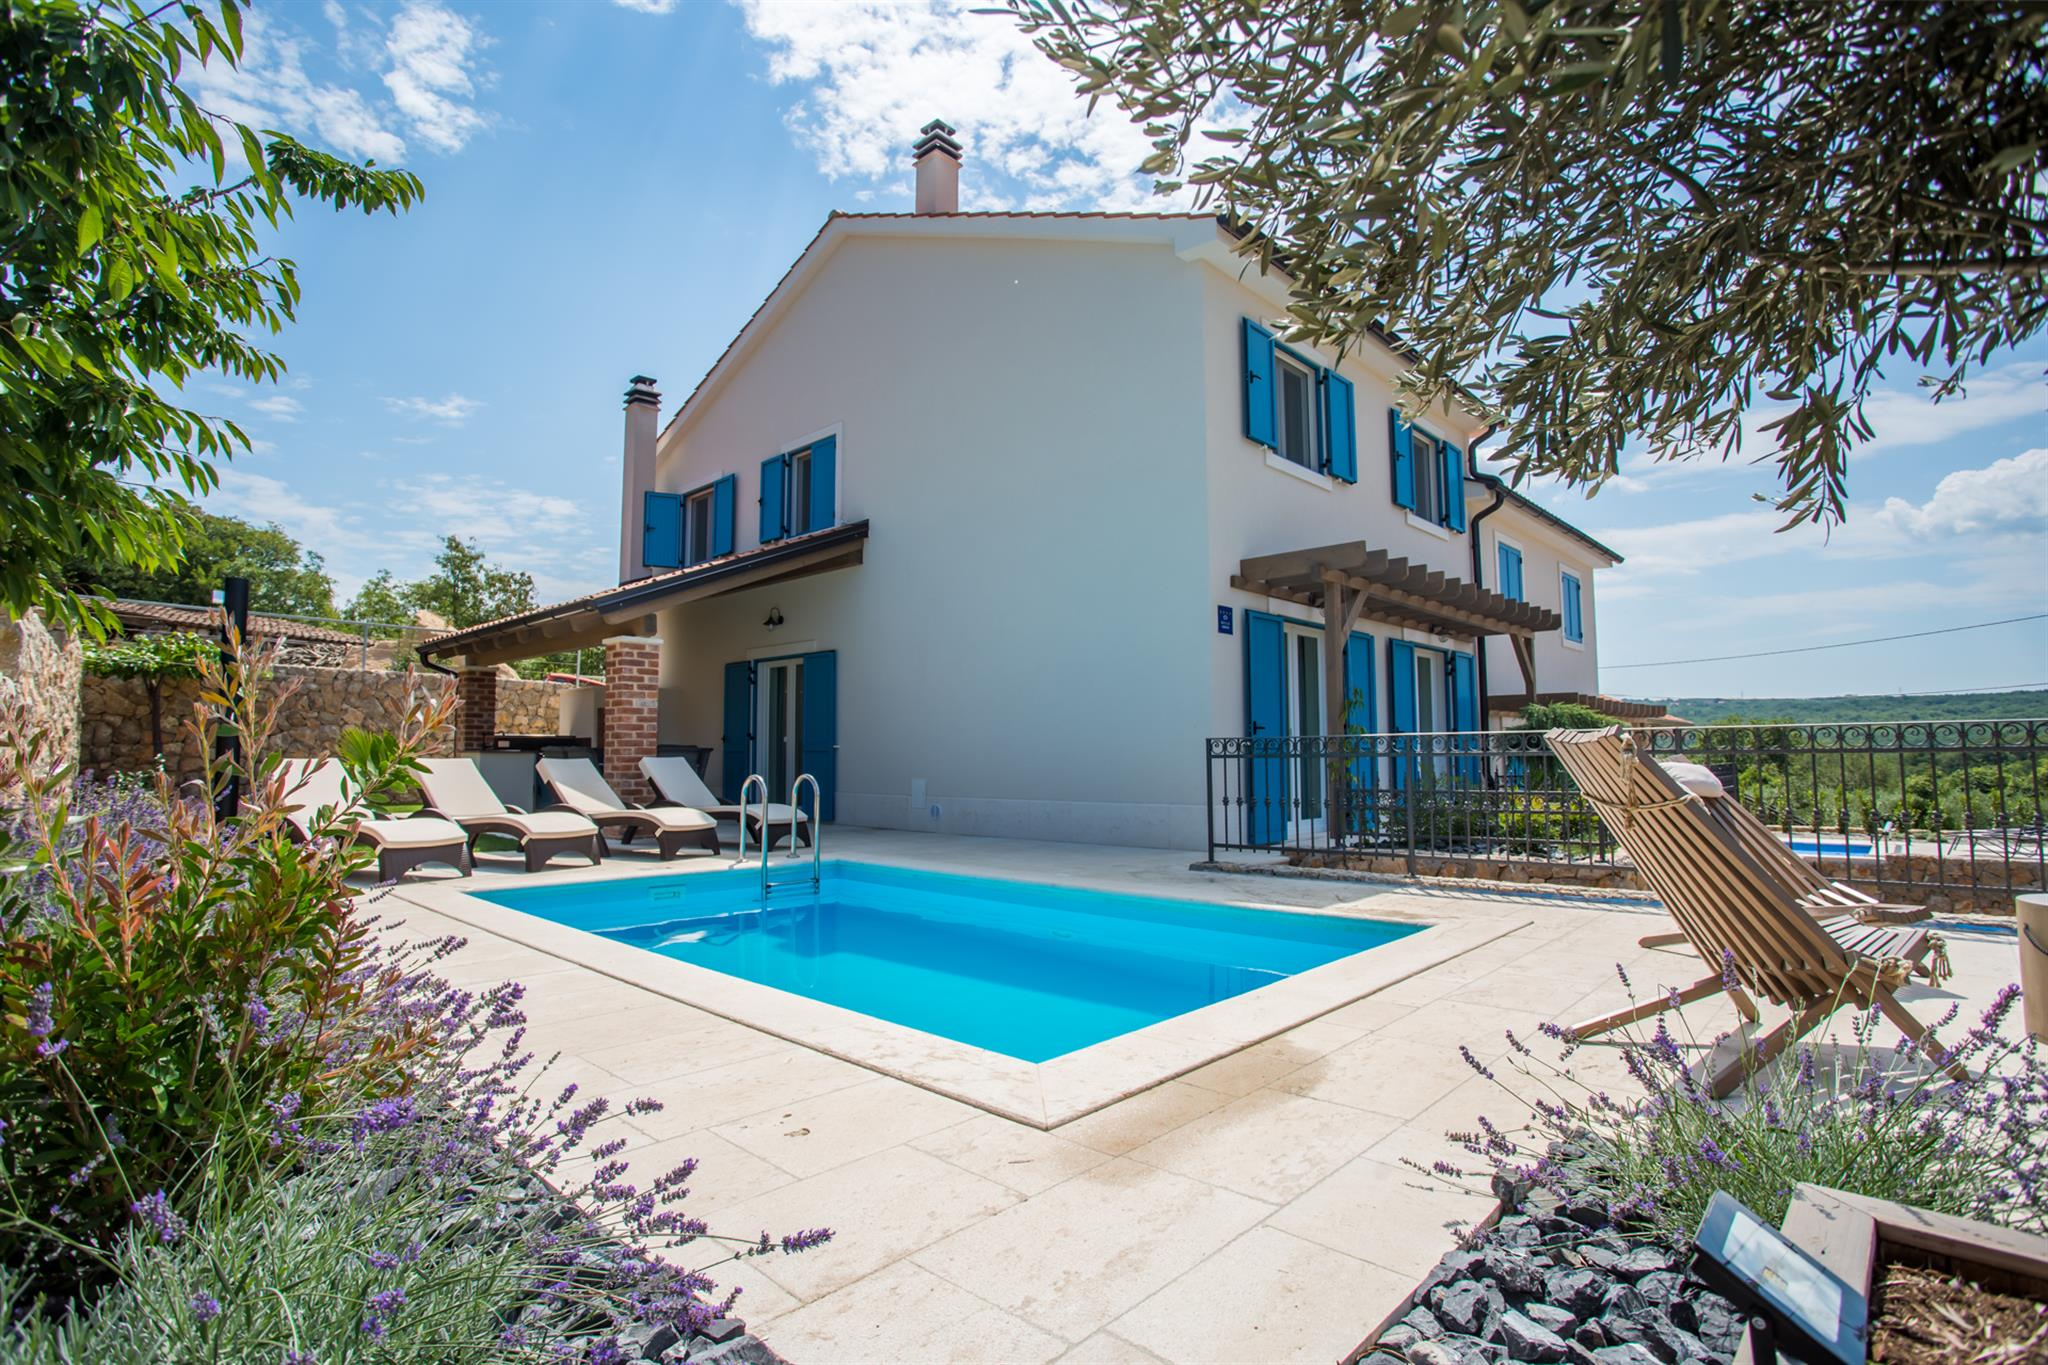 Villa Tana with a swimming pool, outdoor kitchen, BBQ & SUP